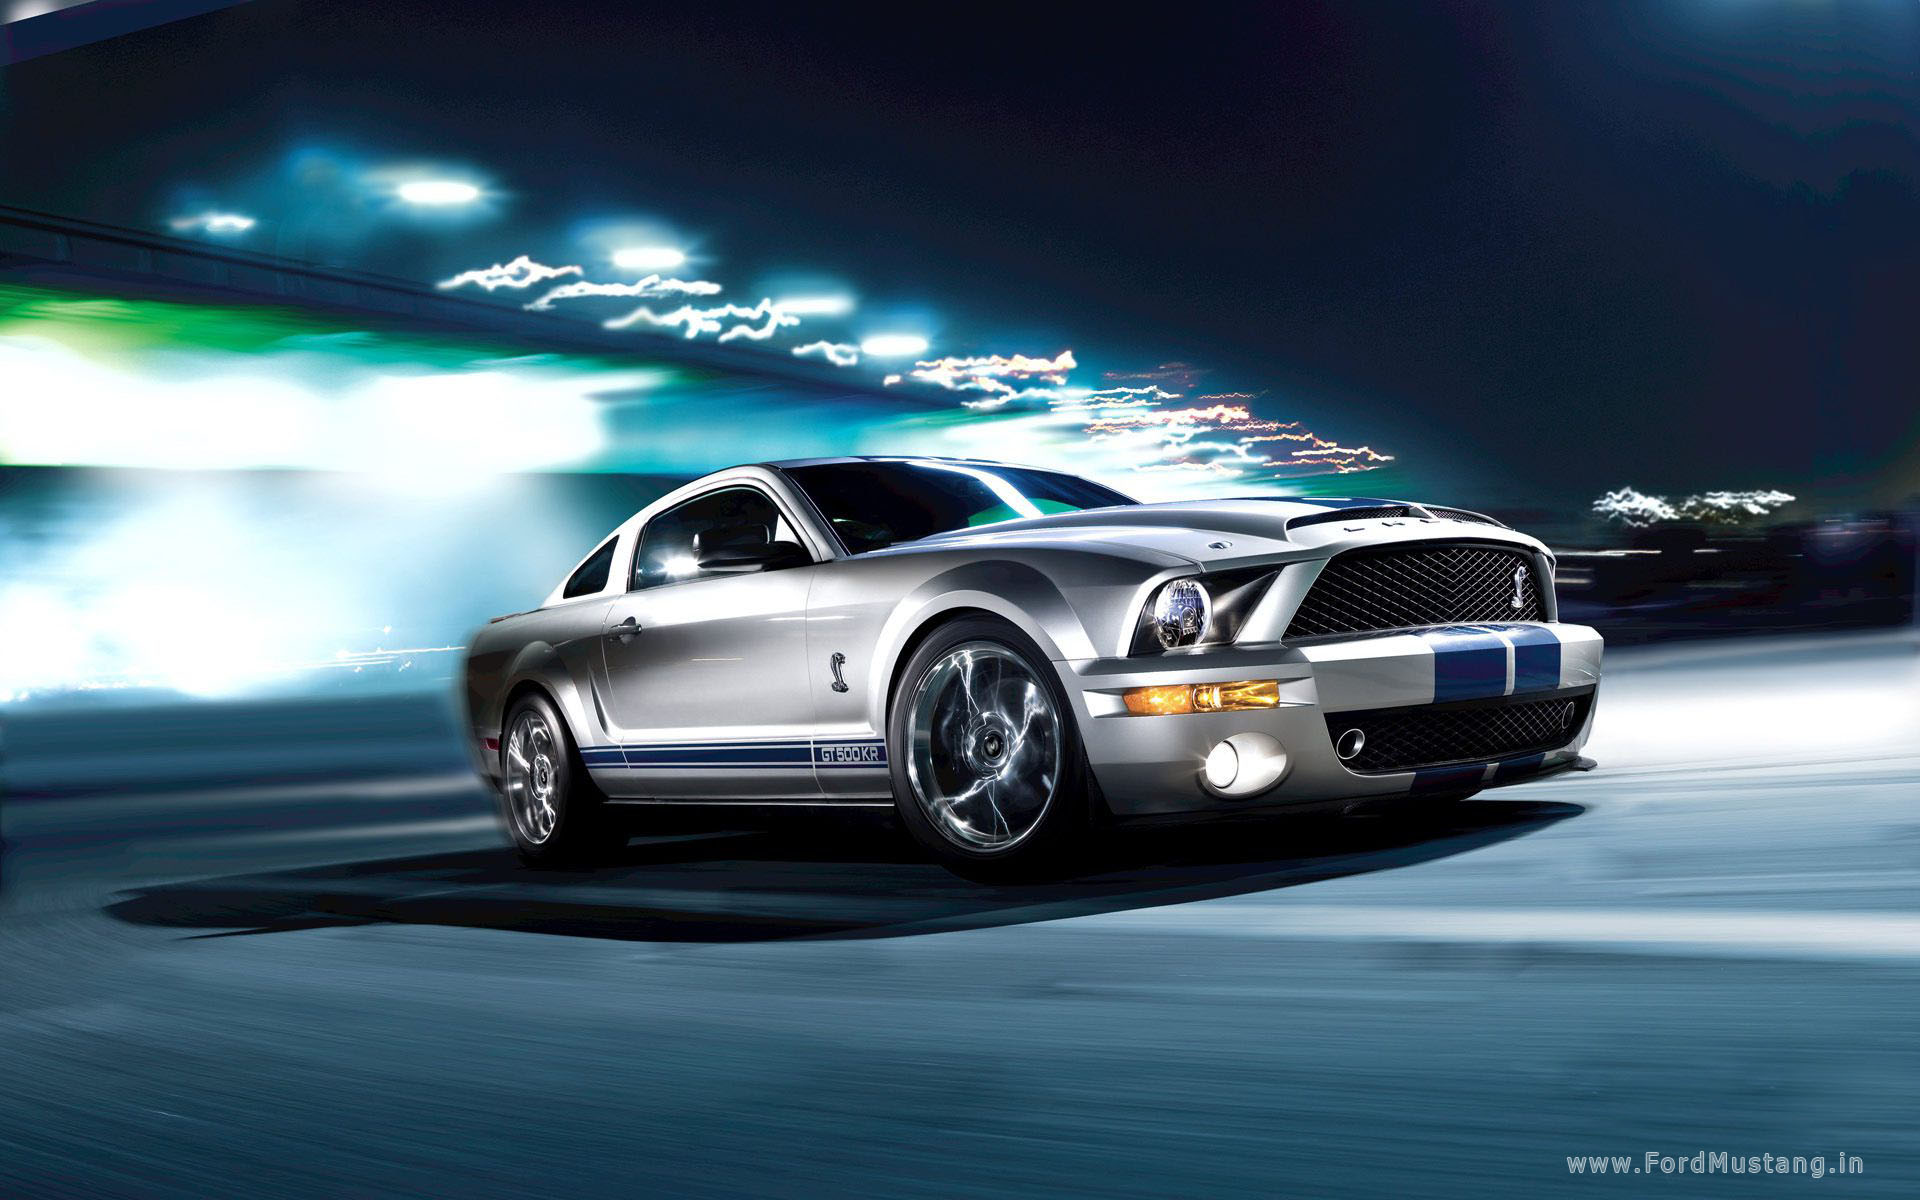 Ford Mustang wallpapers HQ High quality Ford Mustang Ford 1920x1200